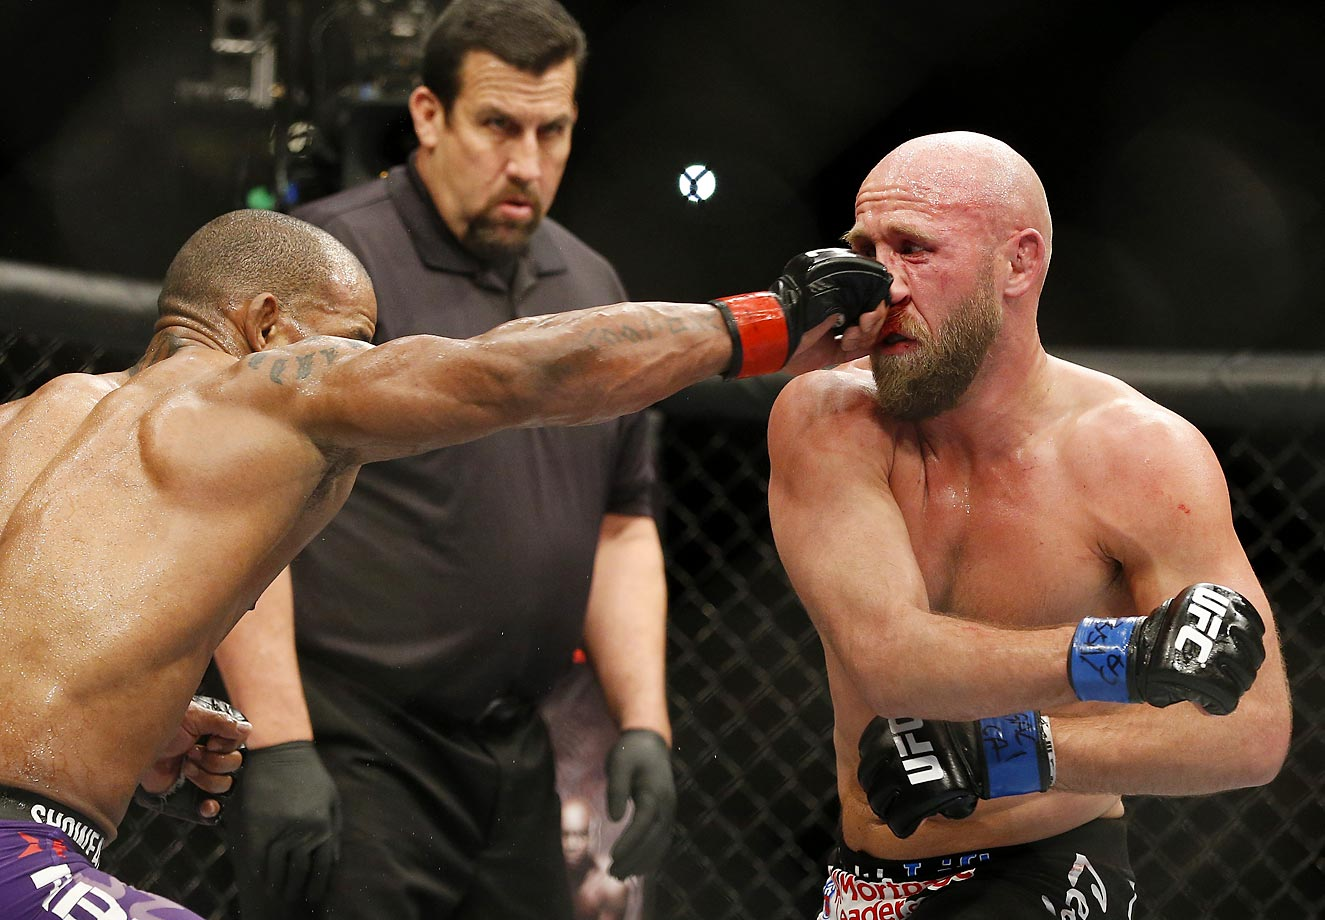 Hector Lombard hits Josh Burkman during their welterweight mixed martial arts bout at UFC 182 in Las Vegas.